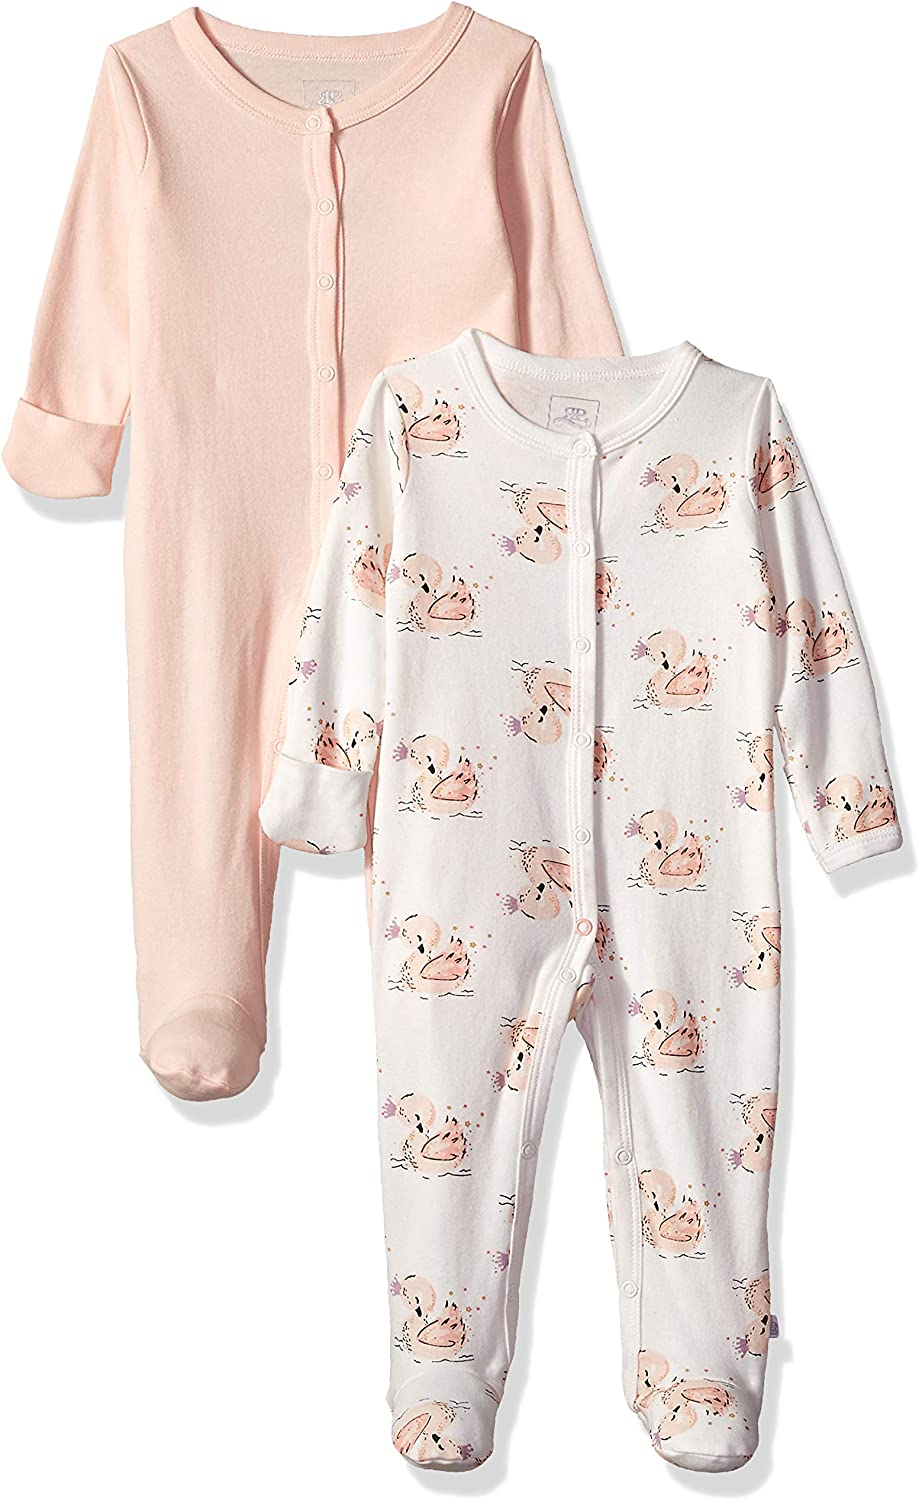 Rosie Pope Baby 2-Pack Coveralls